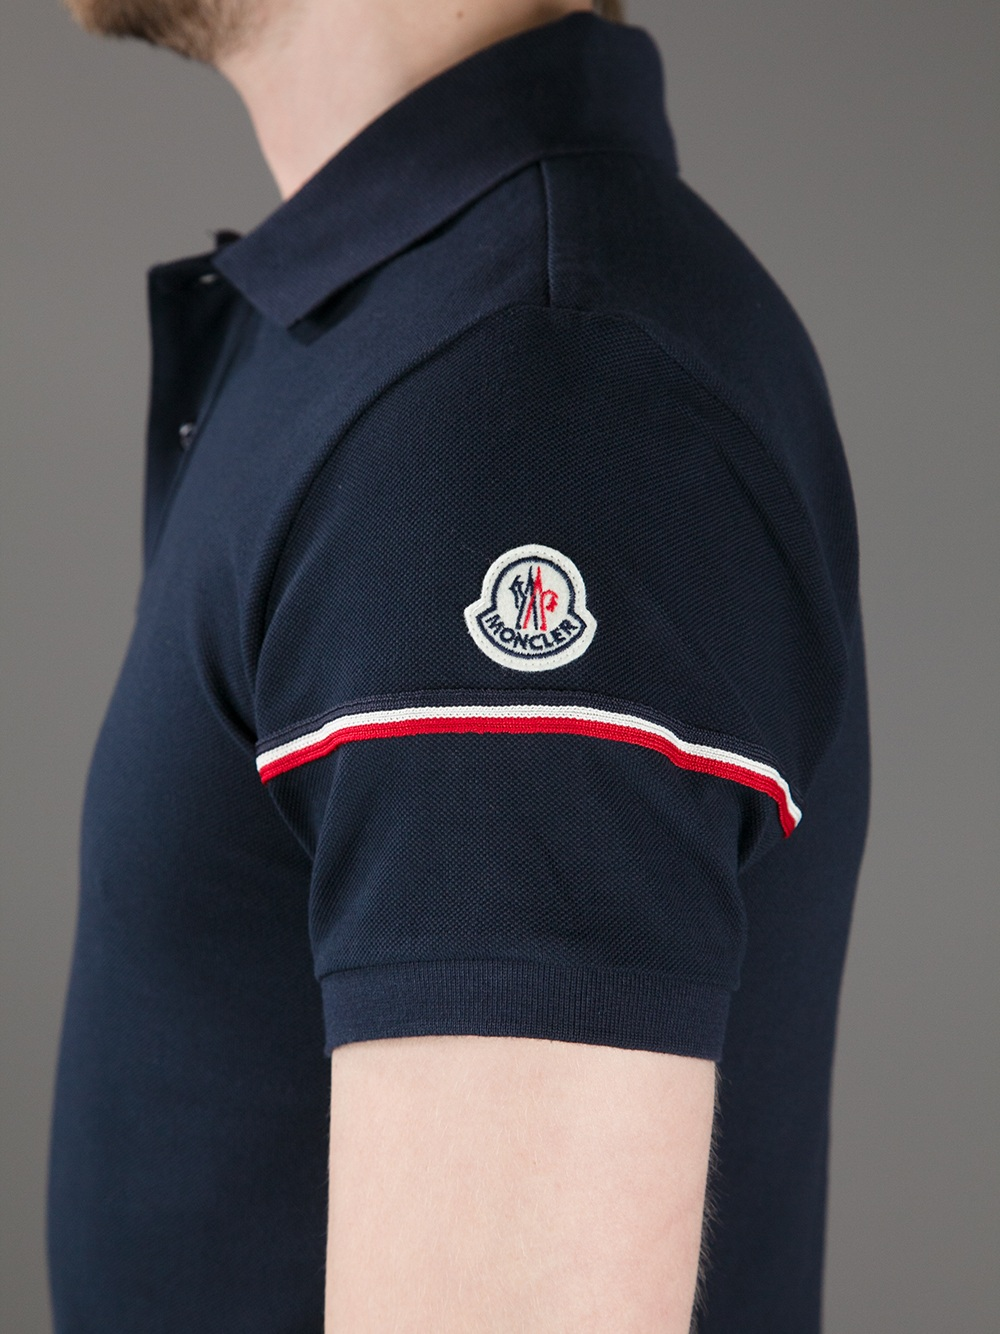 9e7d5c5fb62d Lyst - Moncler Classic Polo Shirt in Blue for Men